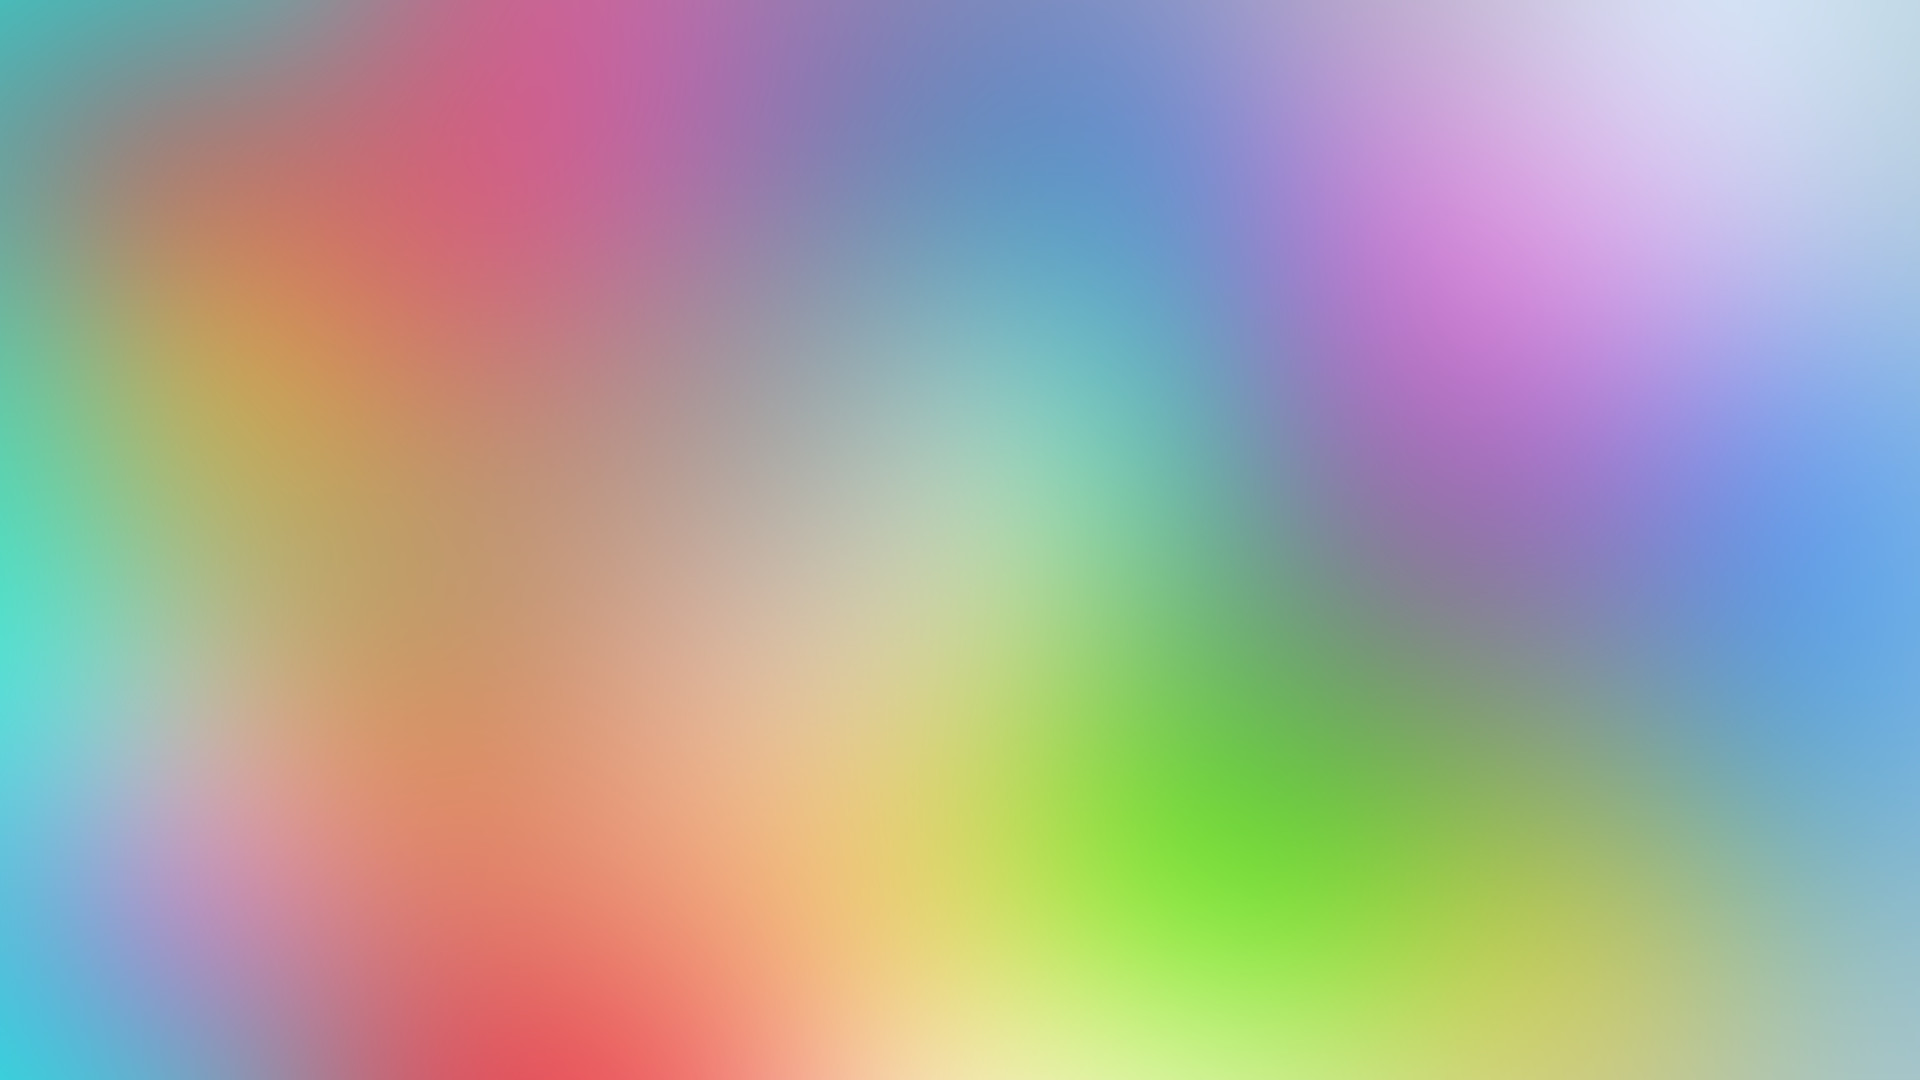 2880x1800 Bright Green Solid Color Background |Bright Green Color Background